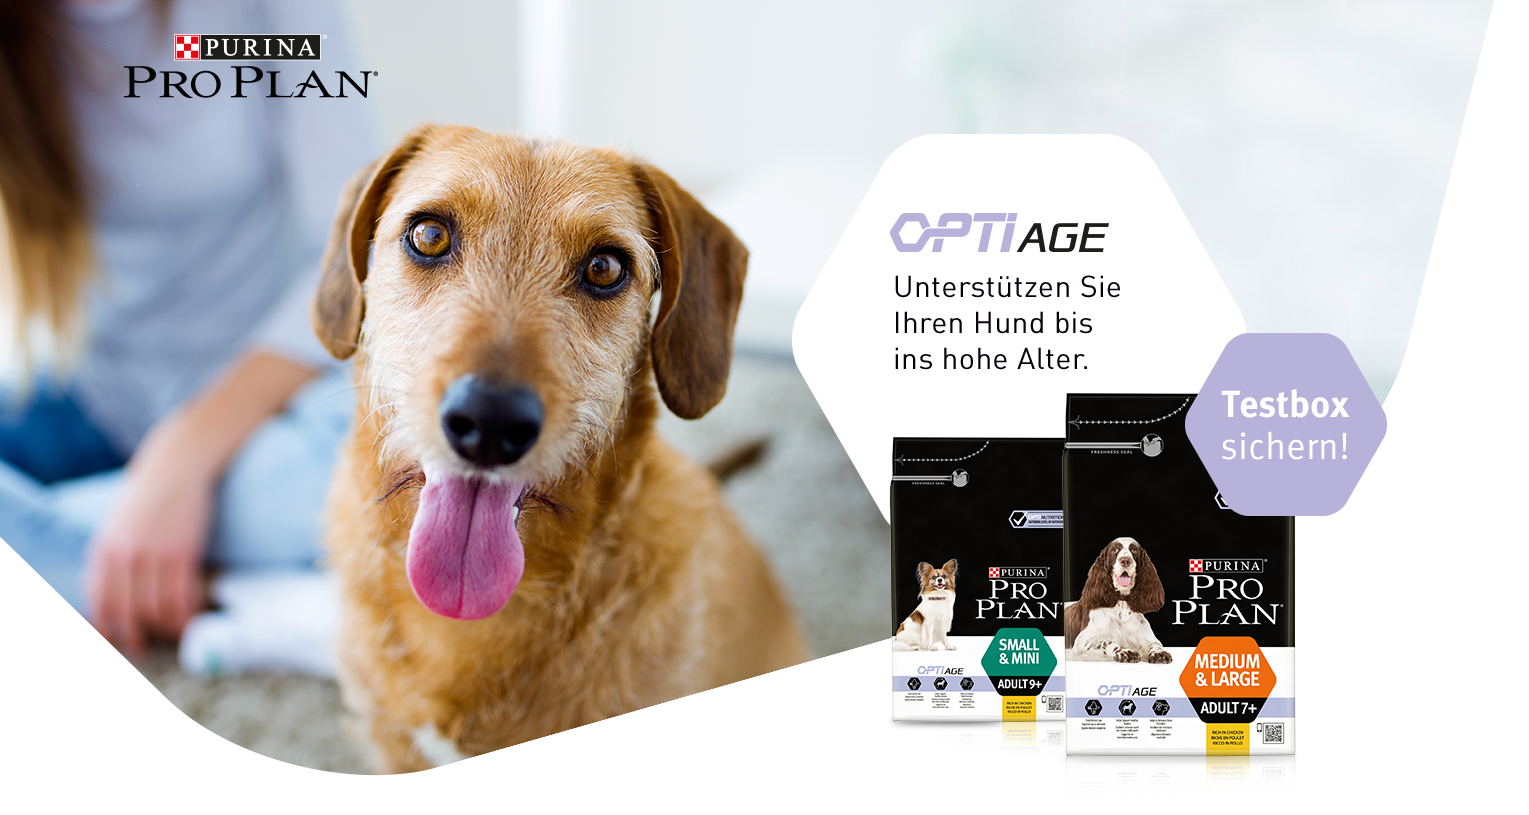 gratis purina pro plan optiage testbox f r hunde bis oder. Black Bedroom Furniture Sets. Home Design Ideas